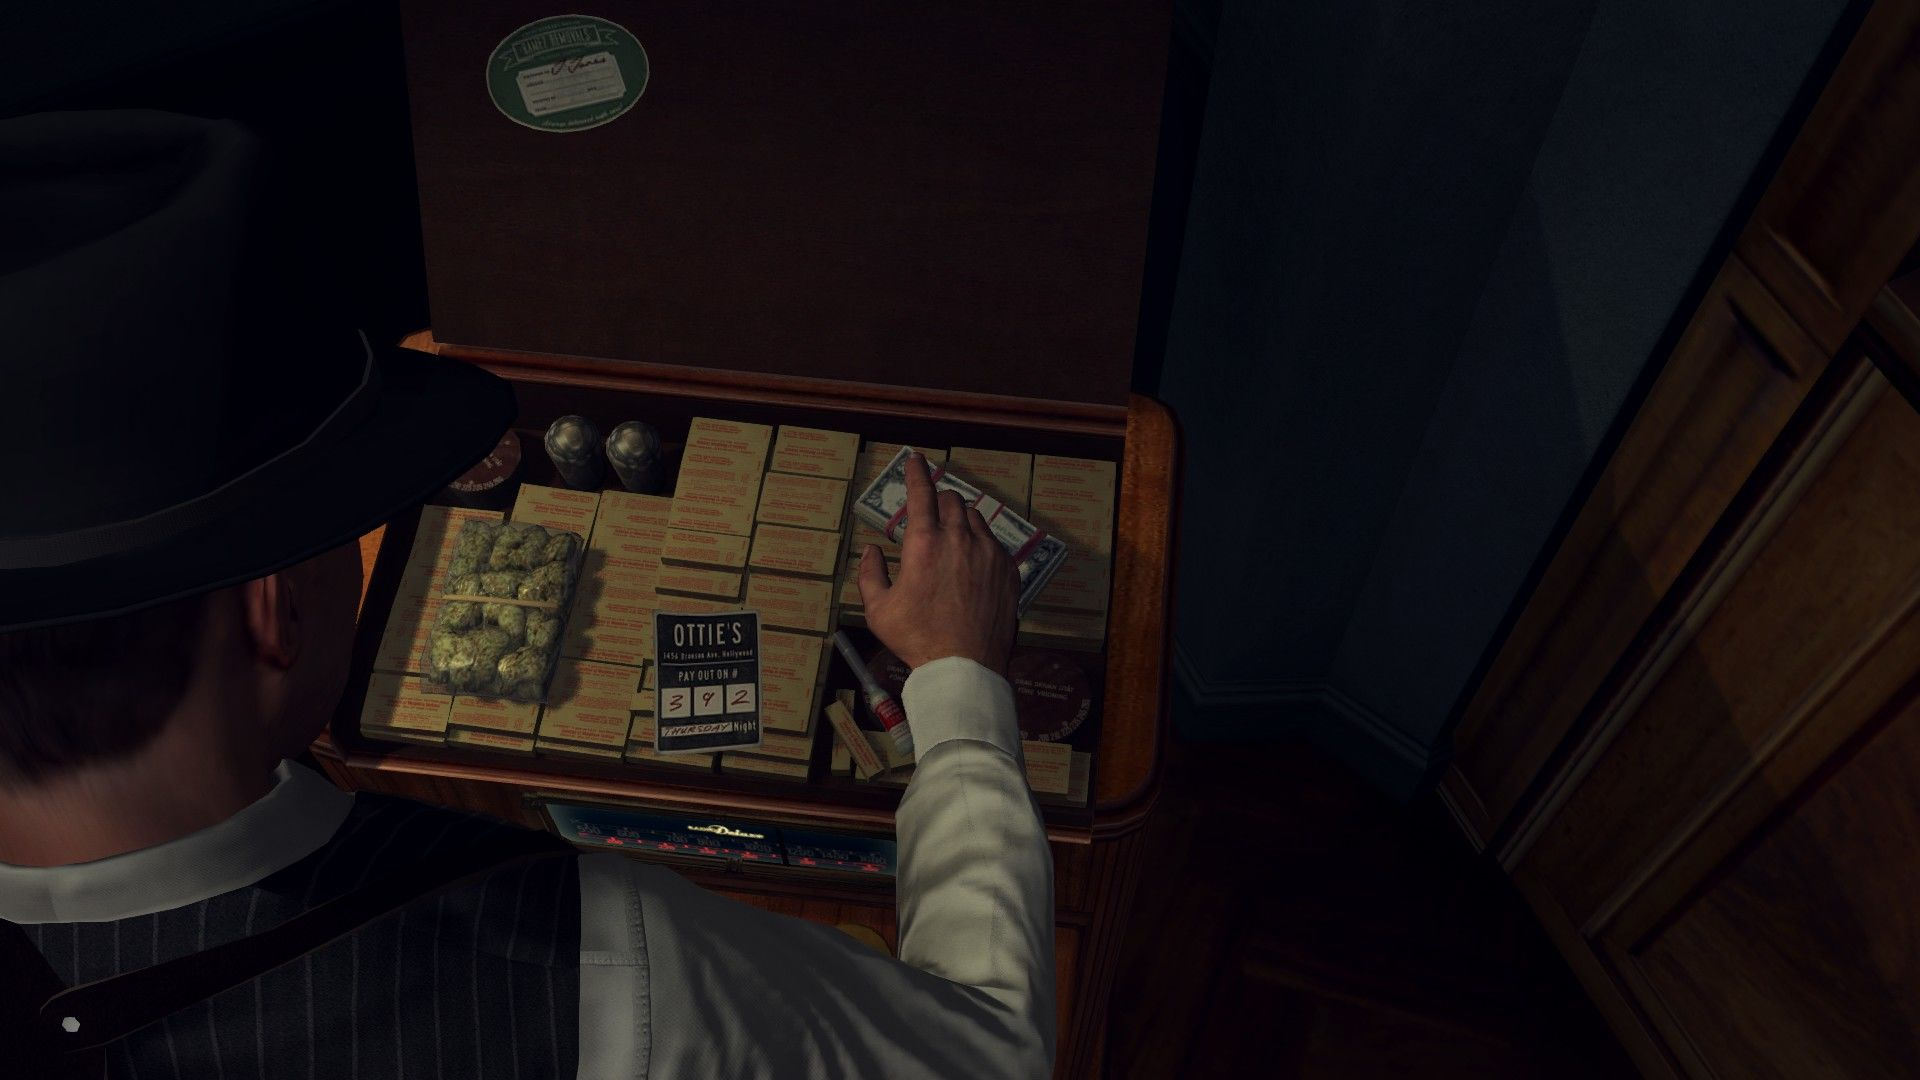 L.A. Noire: The Complete Edition Windows Now that is a nice find which deserves proper inspection.